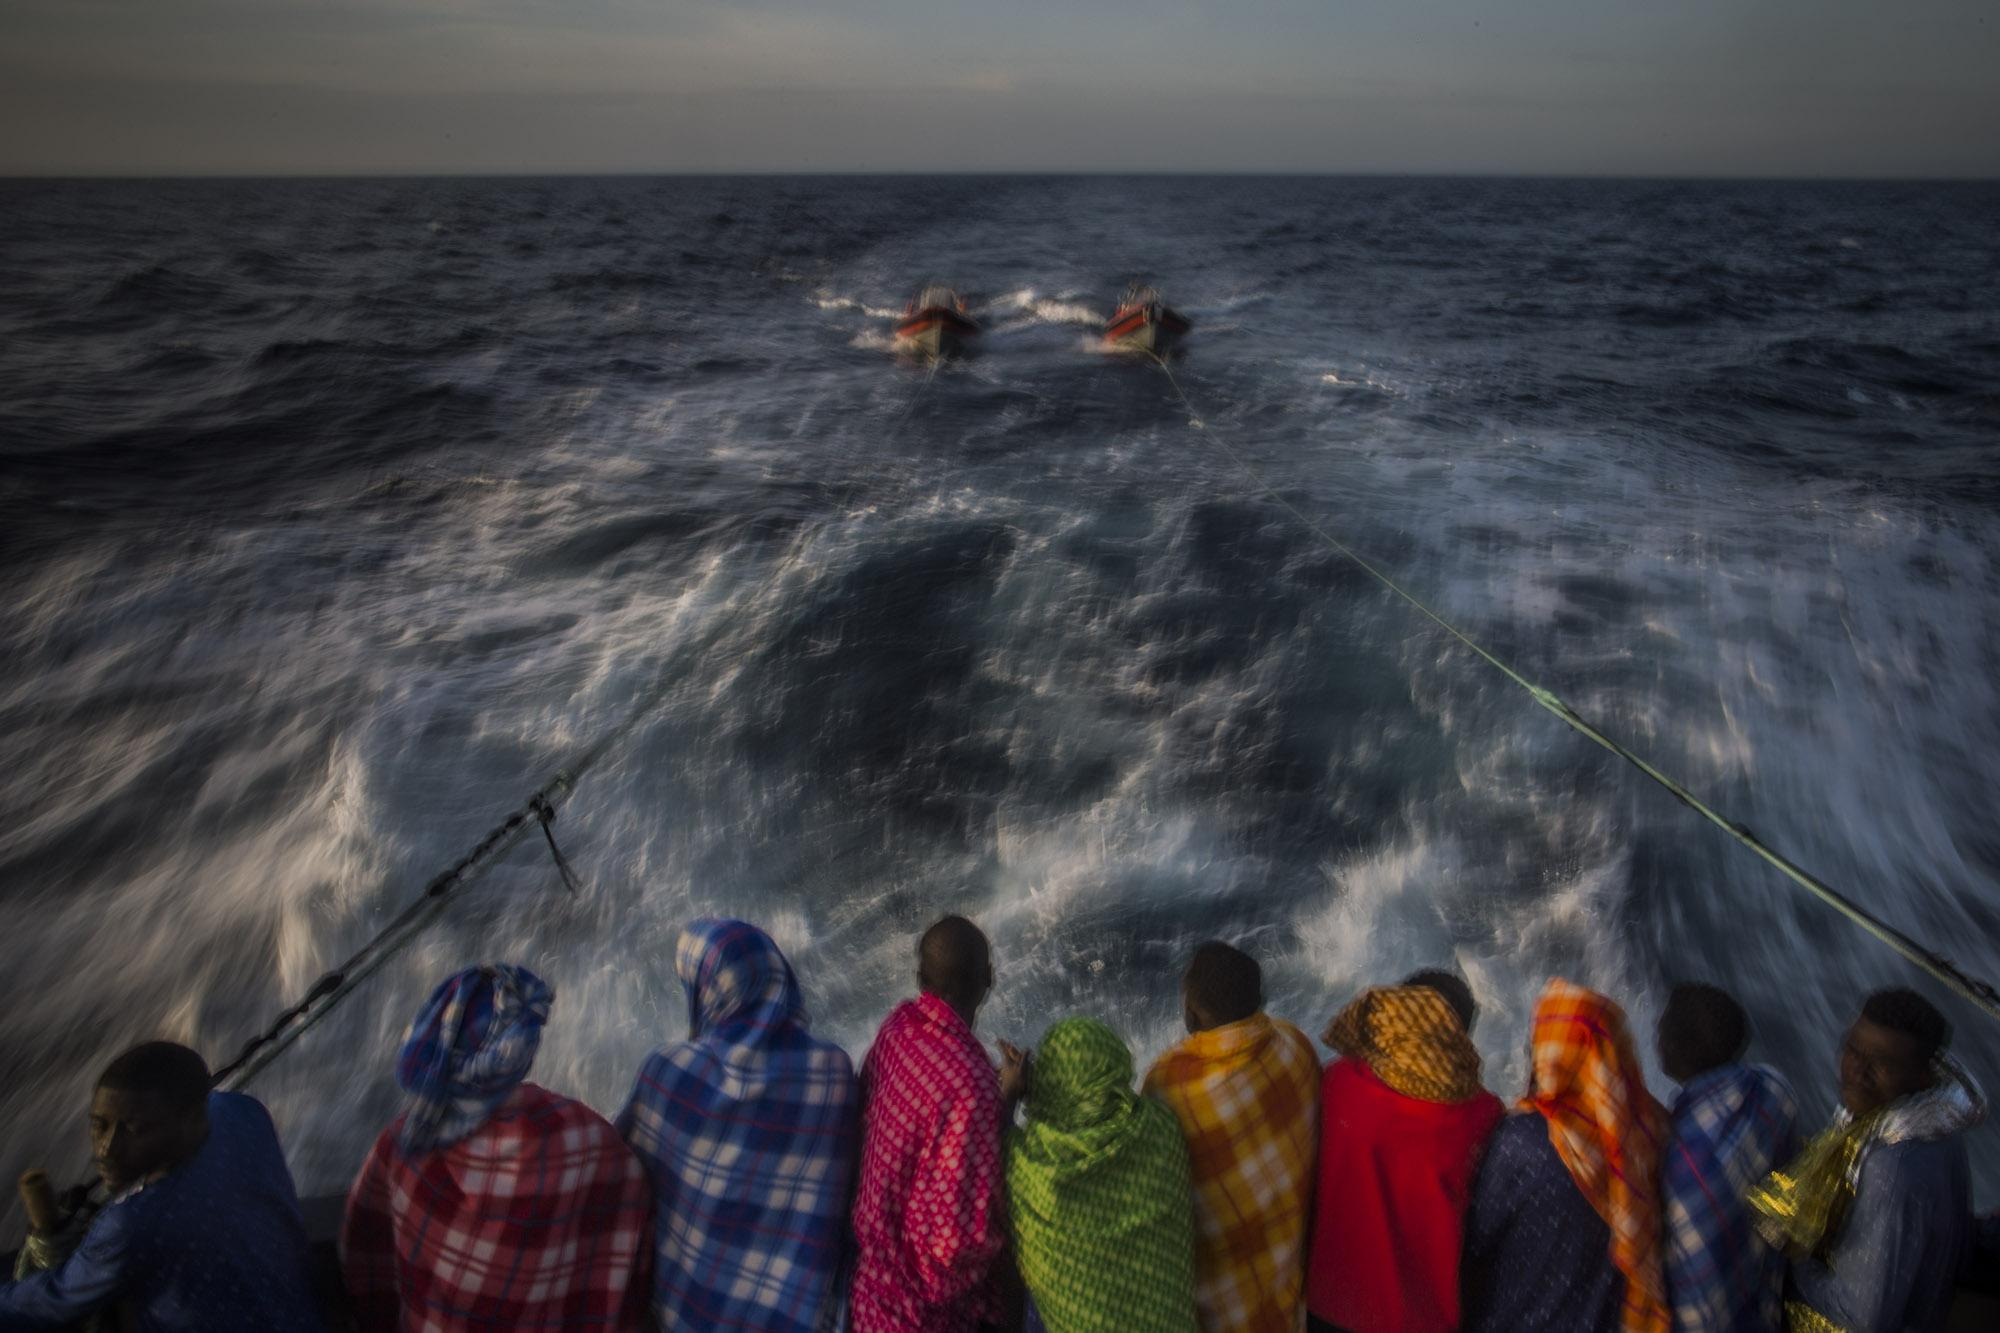 Migrants from different African nationalities rest aboard a Spanish NGO Open Arms rescue ship, as the vessel heads to the Italian island of Lampedusa, early Sunday, March 5, 2017. By the time I shot this picture, a team of aid workers had already rescued more than 800 people during a 2-week rescue mission in international waters, off the Libyan coast, as thousands of migrants, mostly Africans but also from Middle East and South Asia, were leaving Libya and trying to reach Europe aboard overcrowded and precarious rubber and wooden boats that could had never crossed the Mediterranean successfully. (© Santi Palacios)